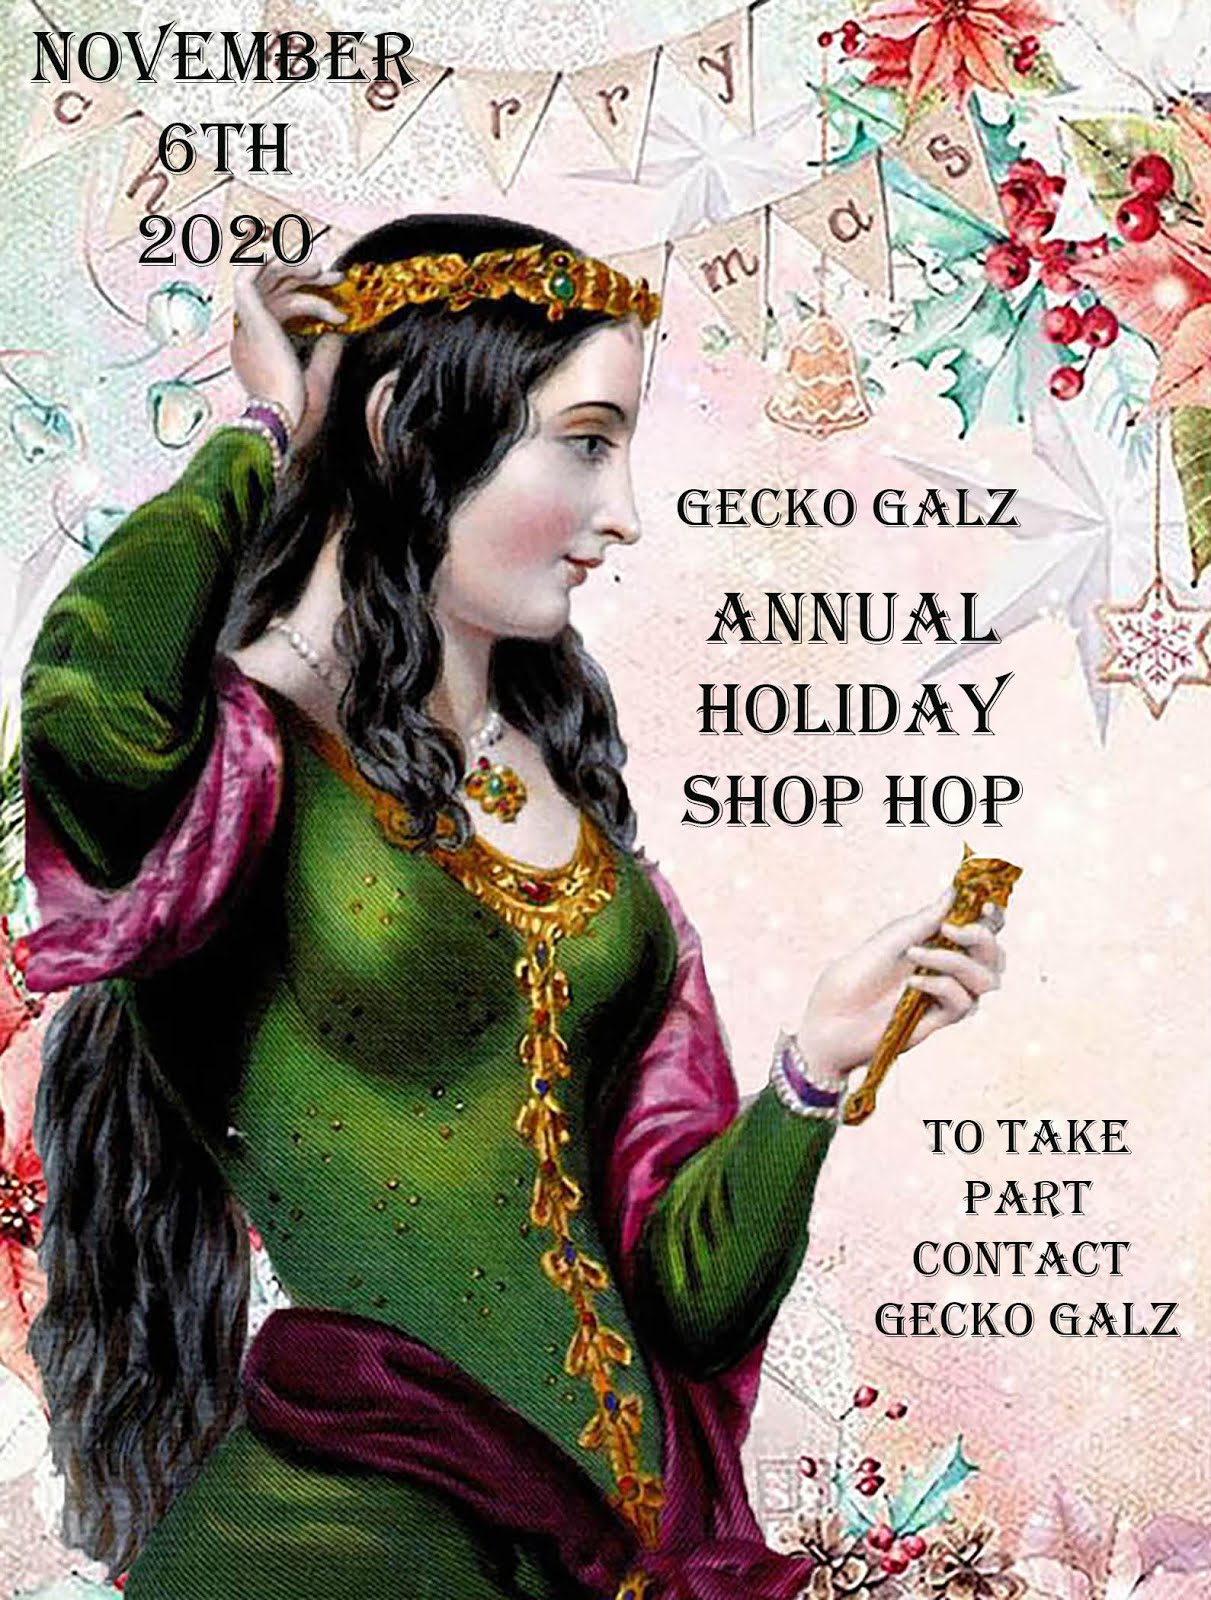 GECKO GALZ ANNUAL SHOP HOP